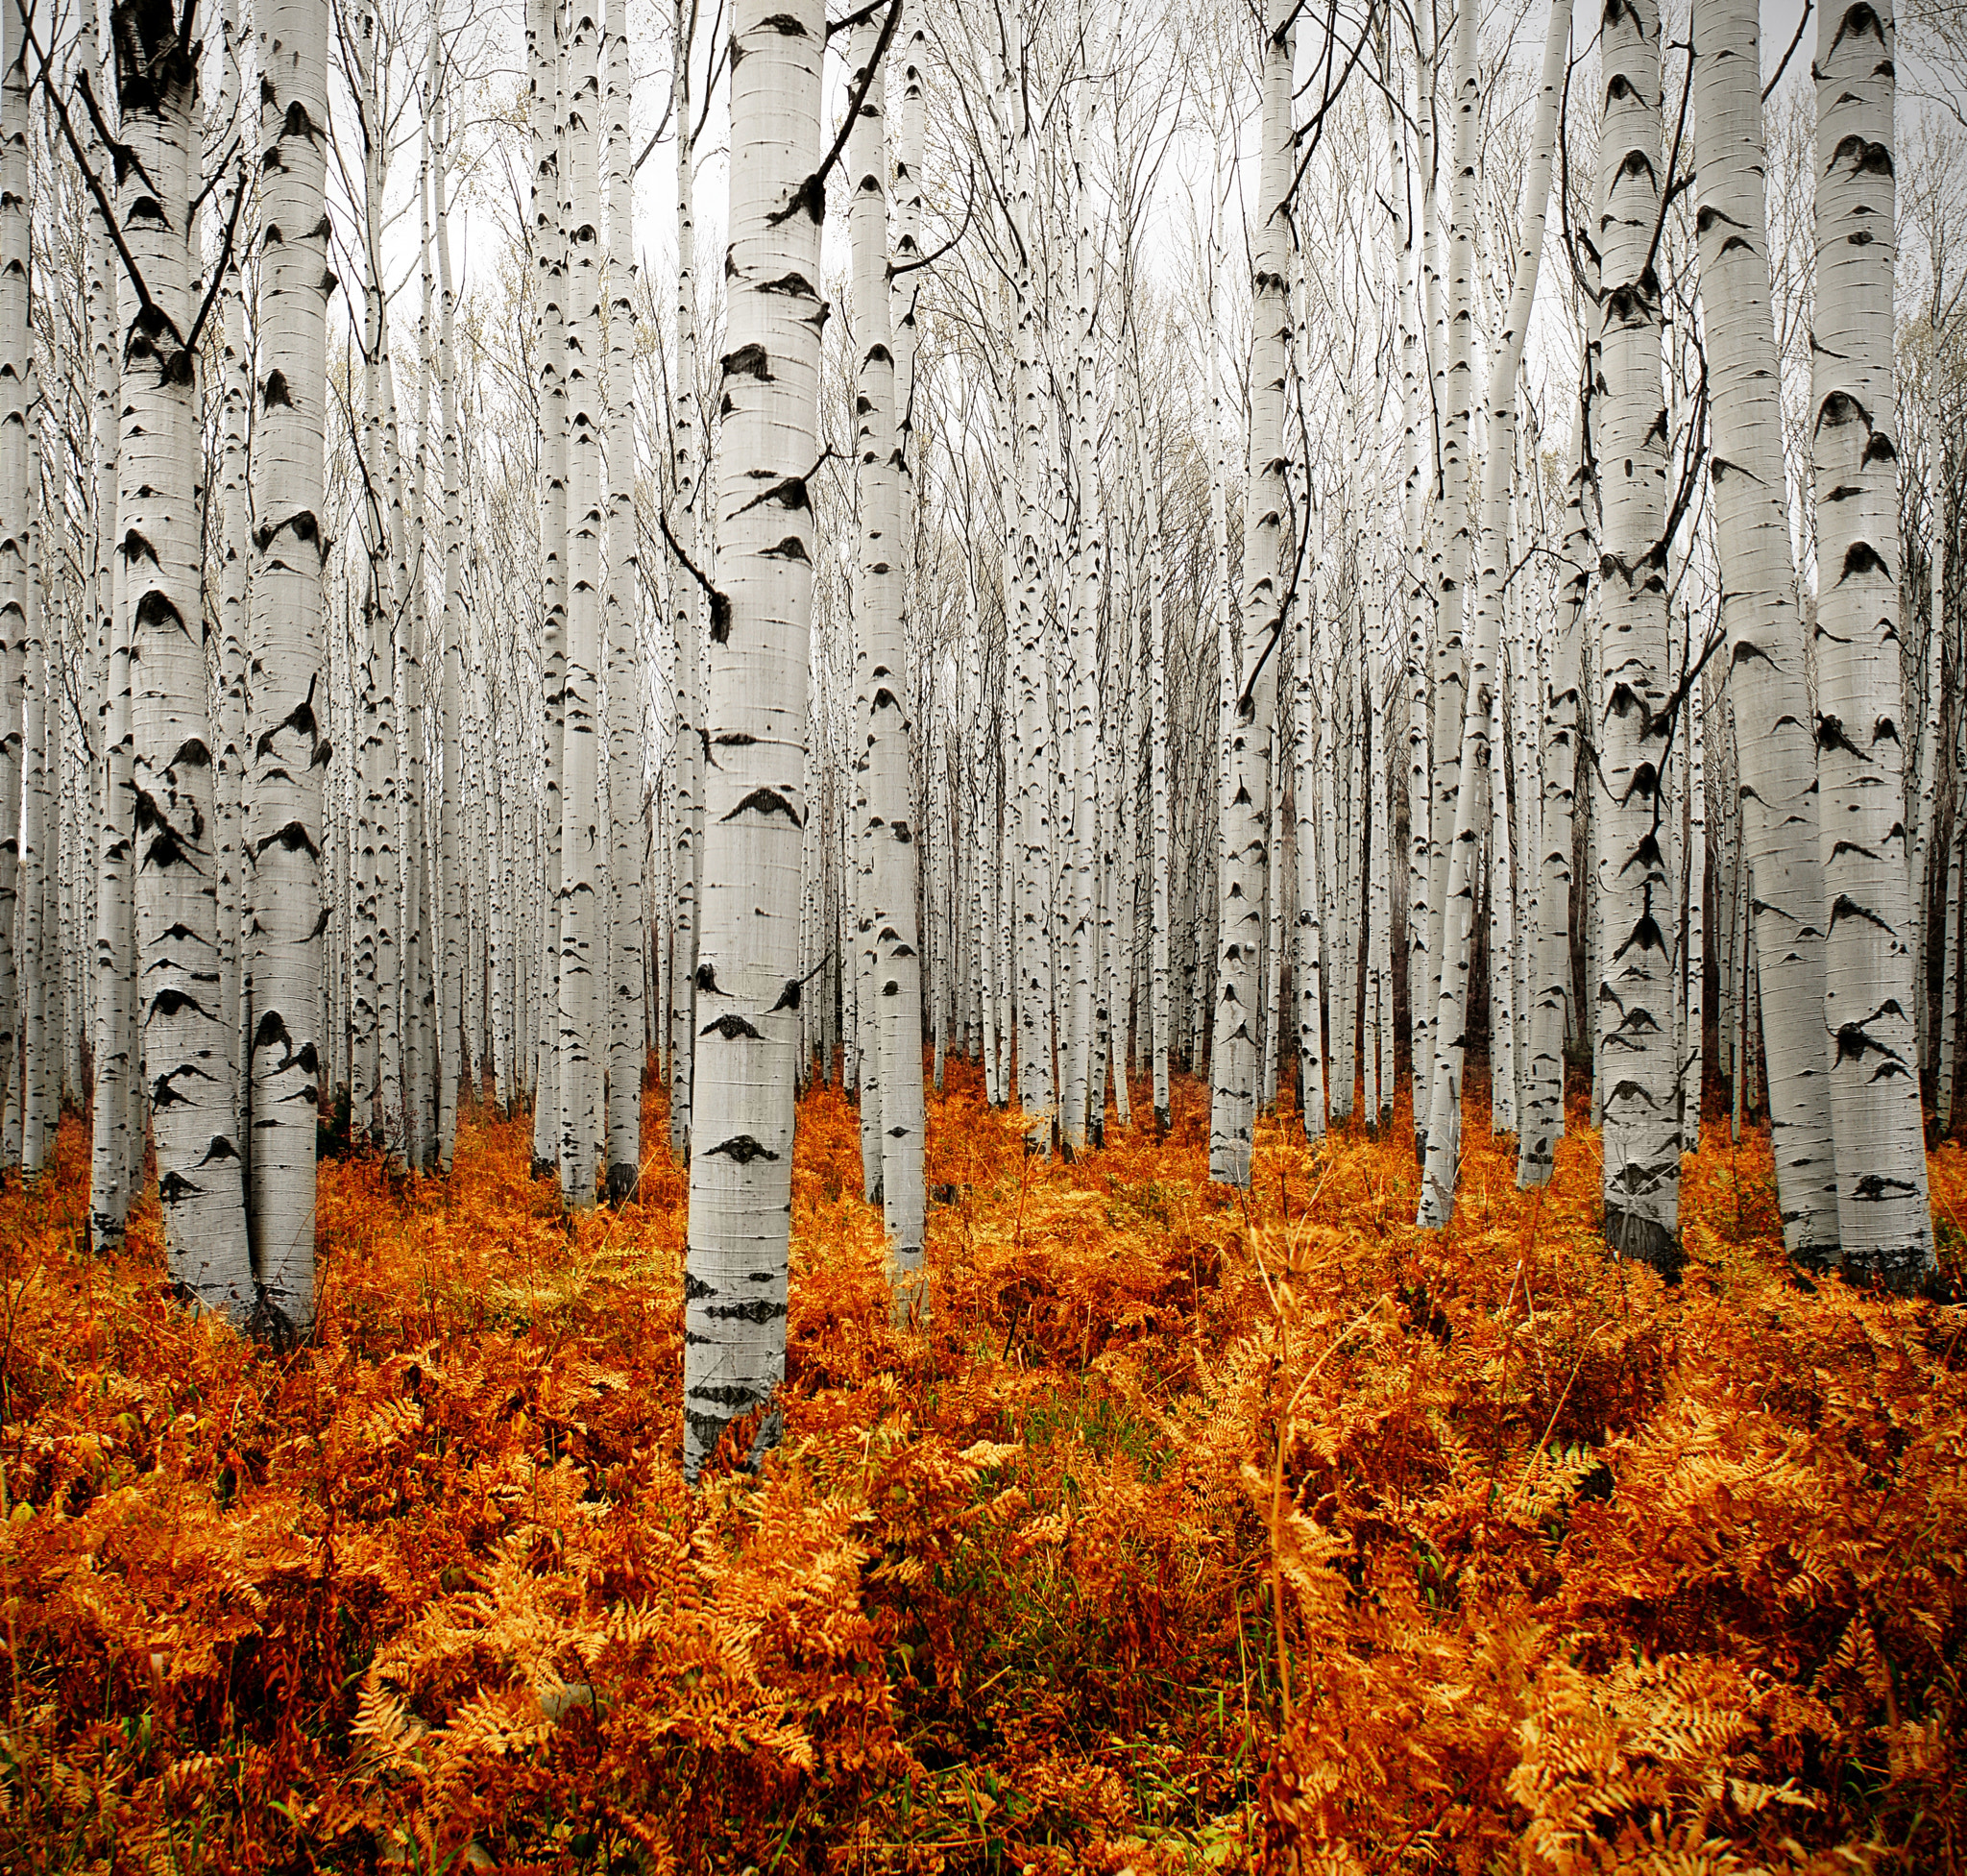 Photograph Aspen Forest by Chad Galloway on 500px